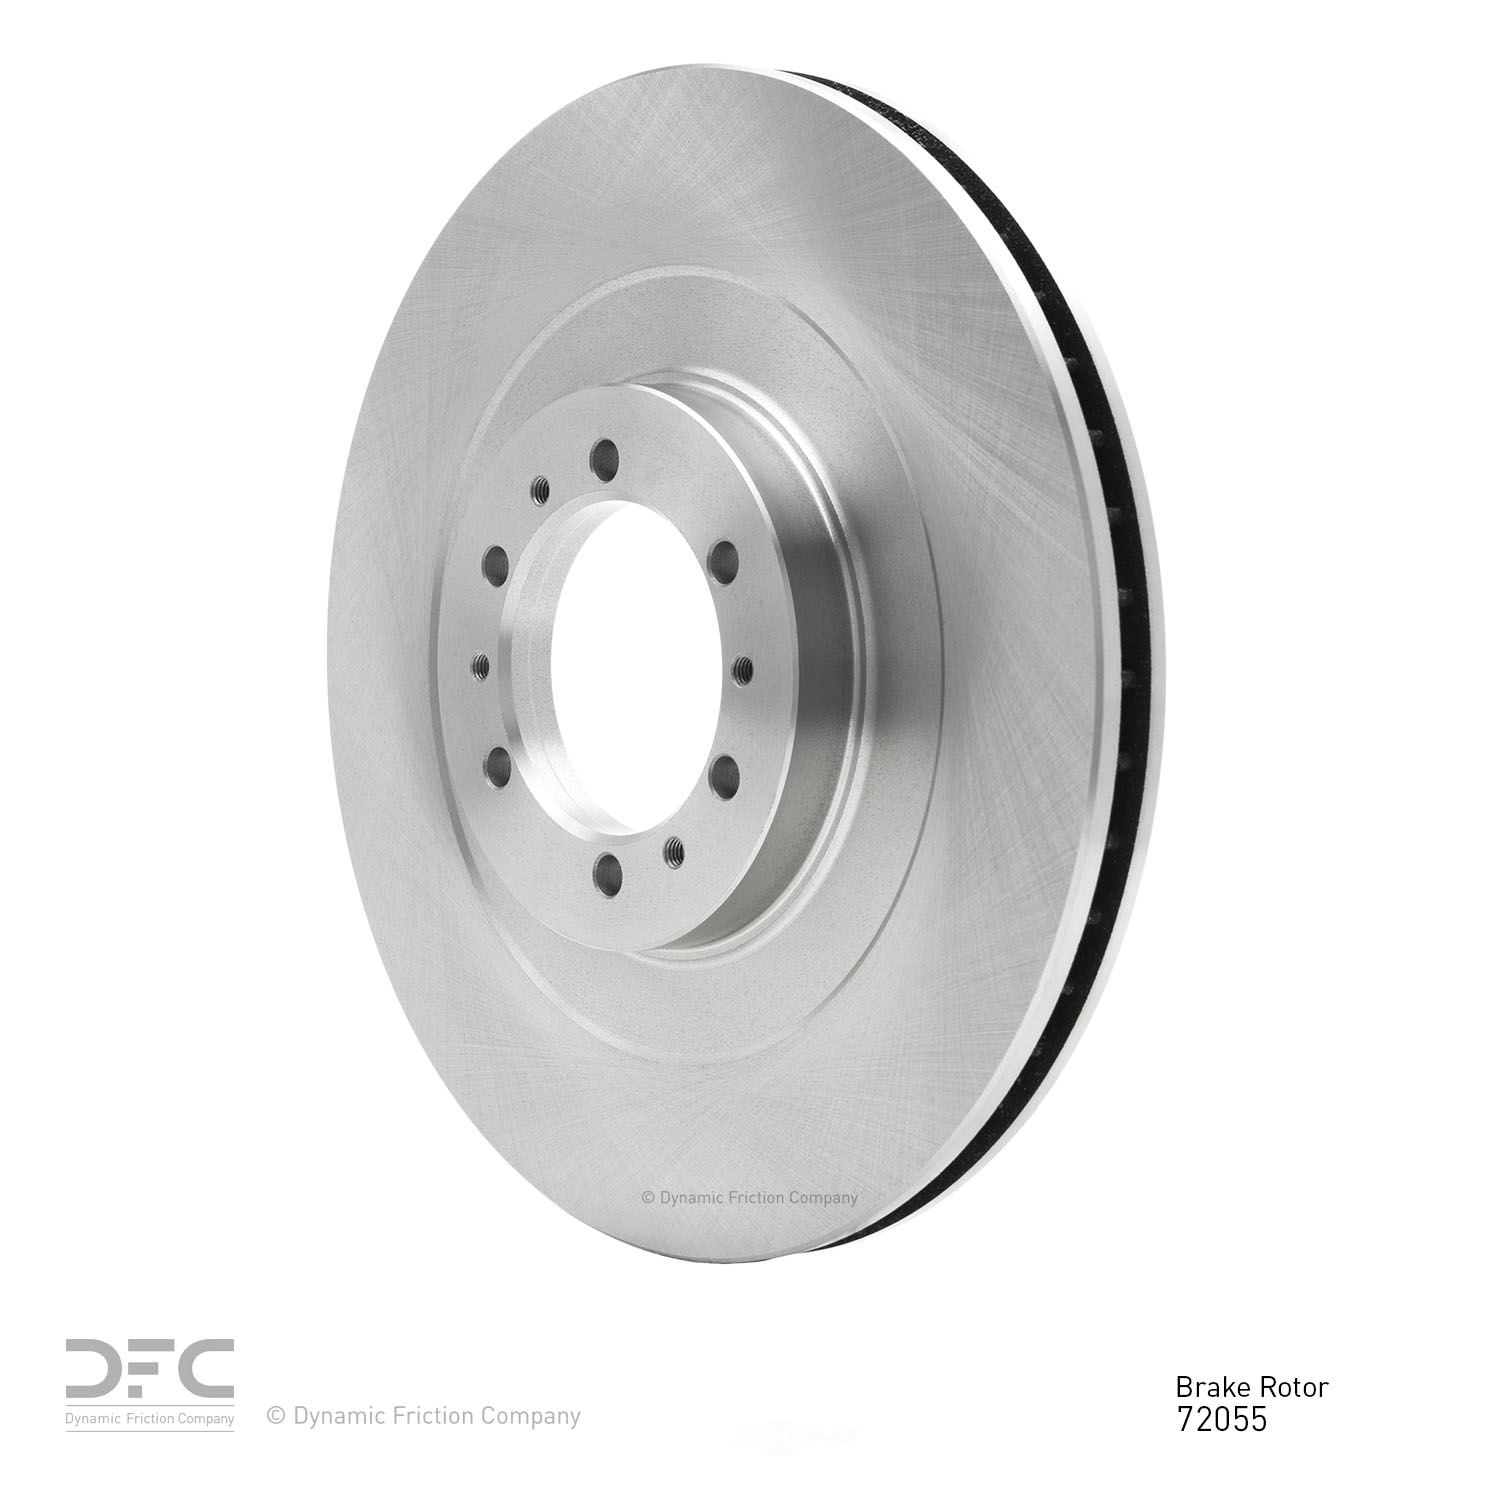 DFC - Premium OE Replacement Rotors - DF1 600-72055